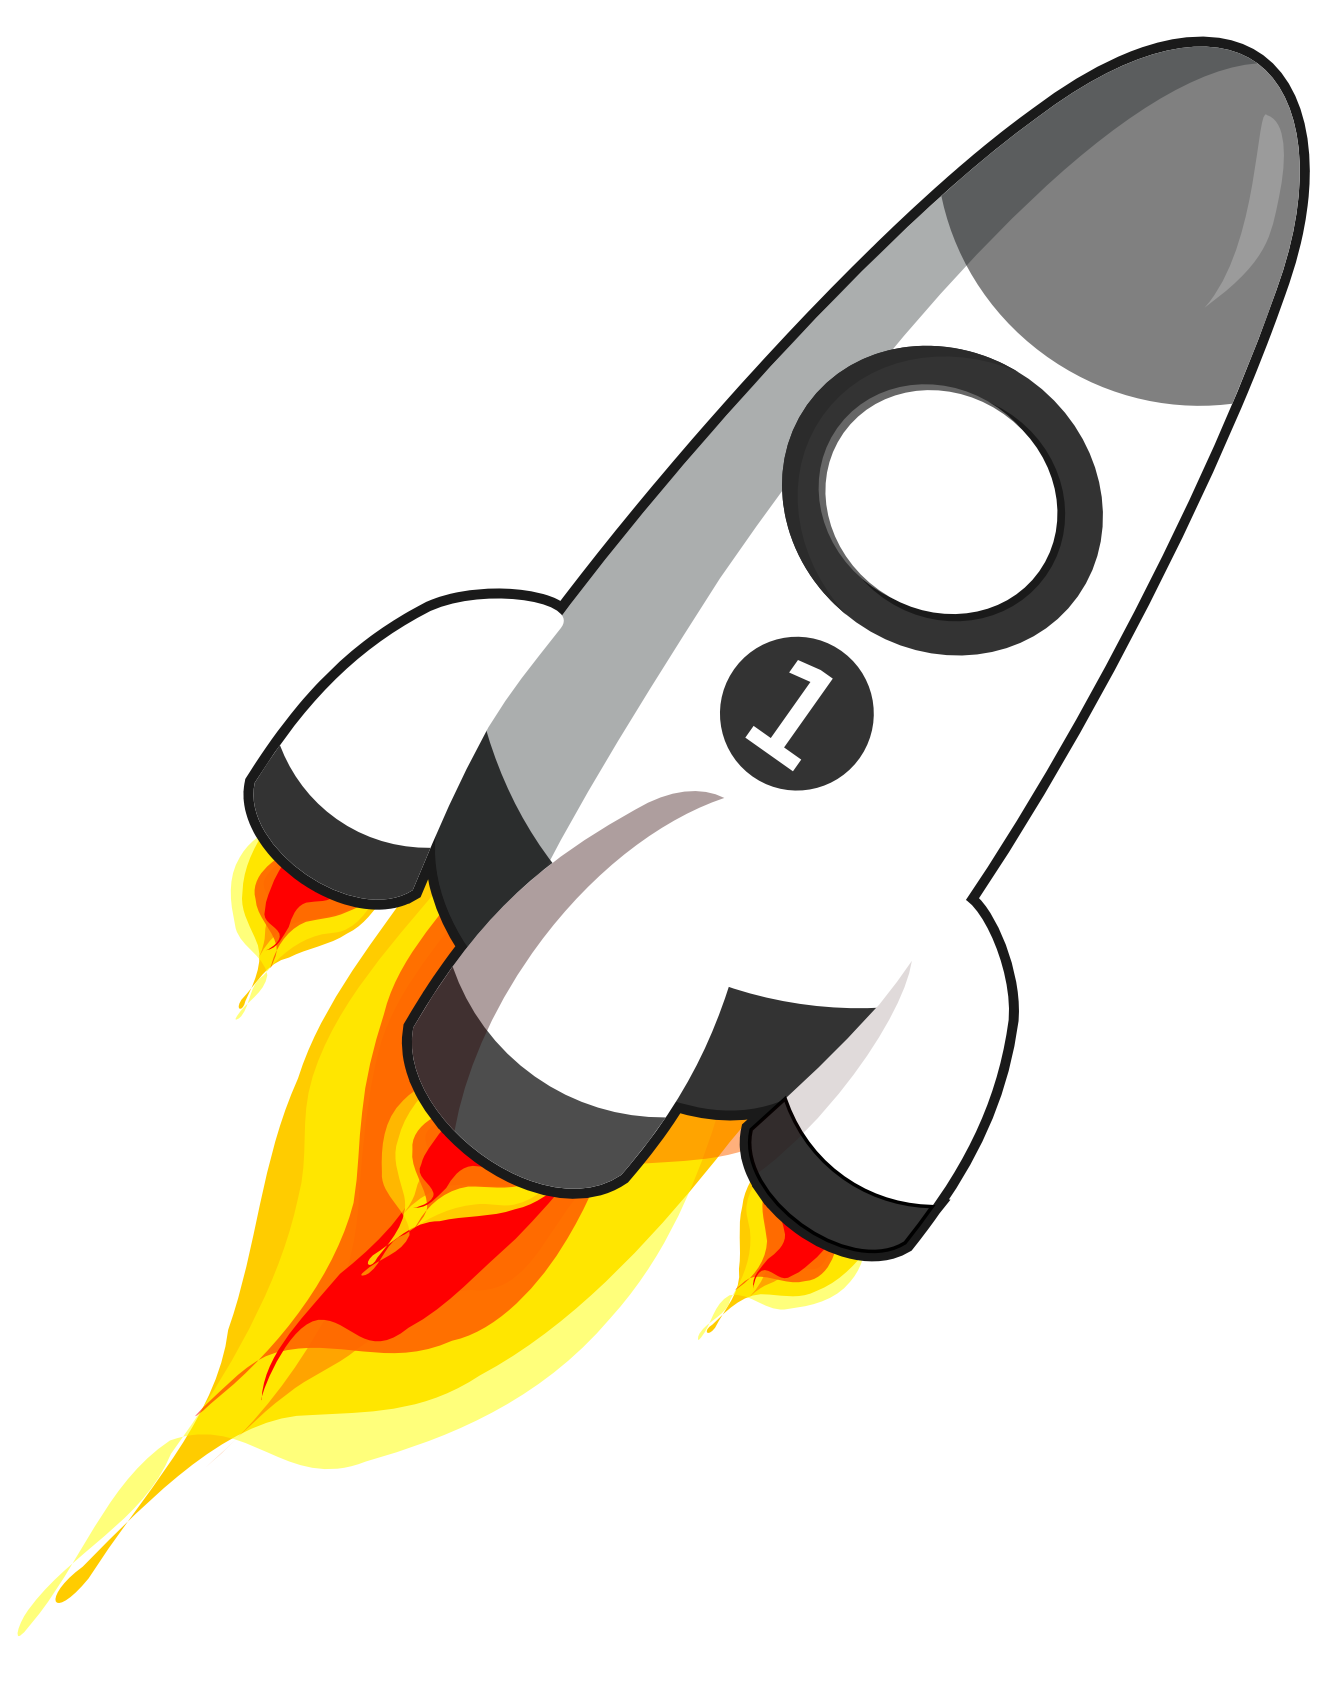 Rocket clipart #9, Download drawings